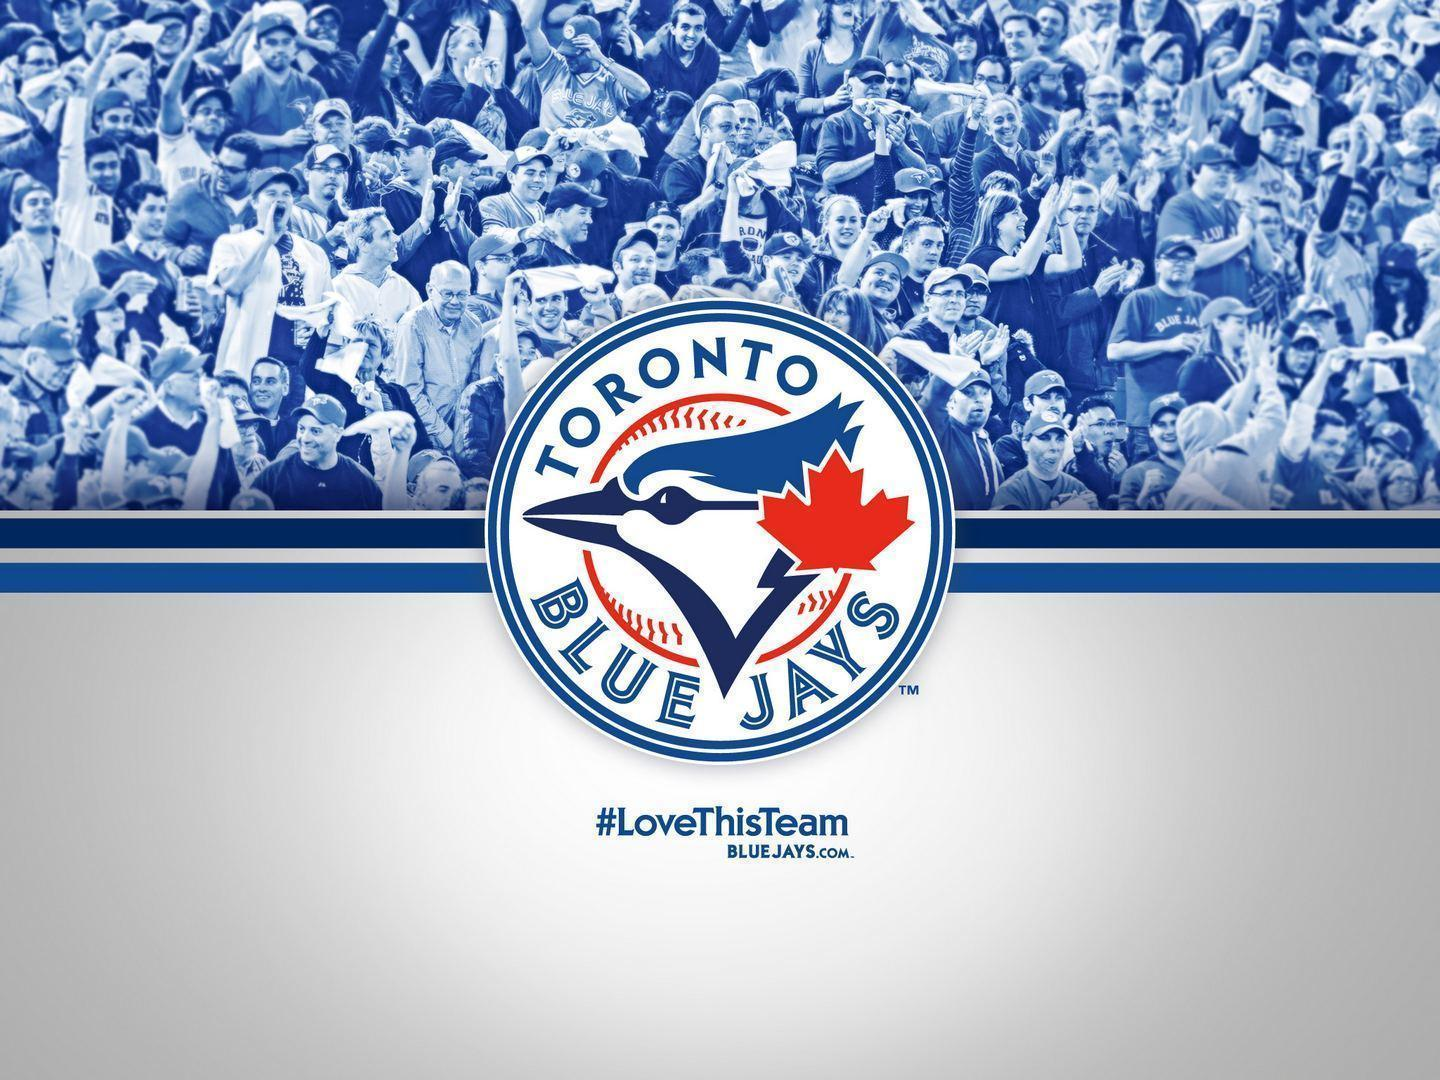 Toronto Blue Jays wallpapers hd free download